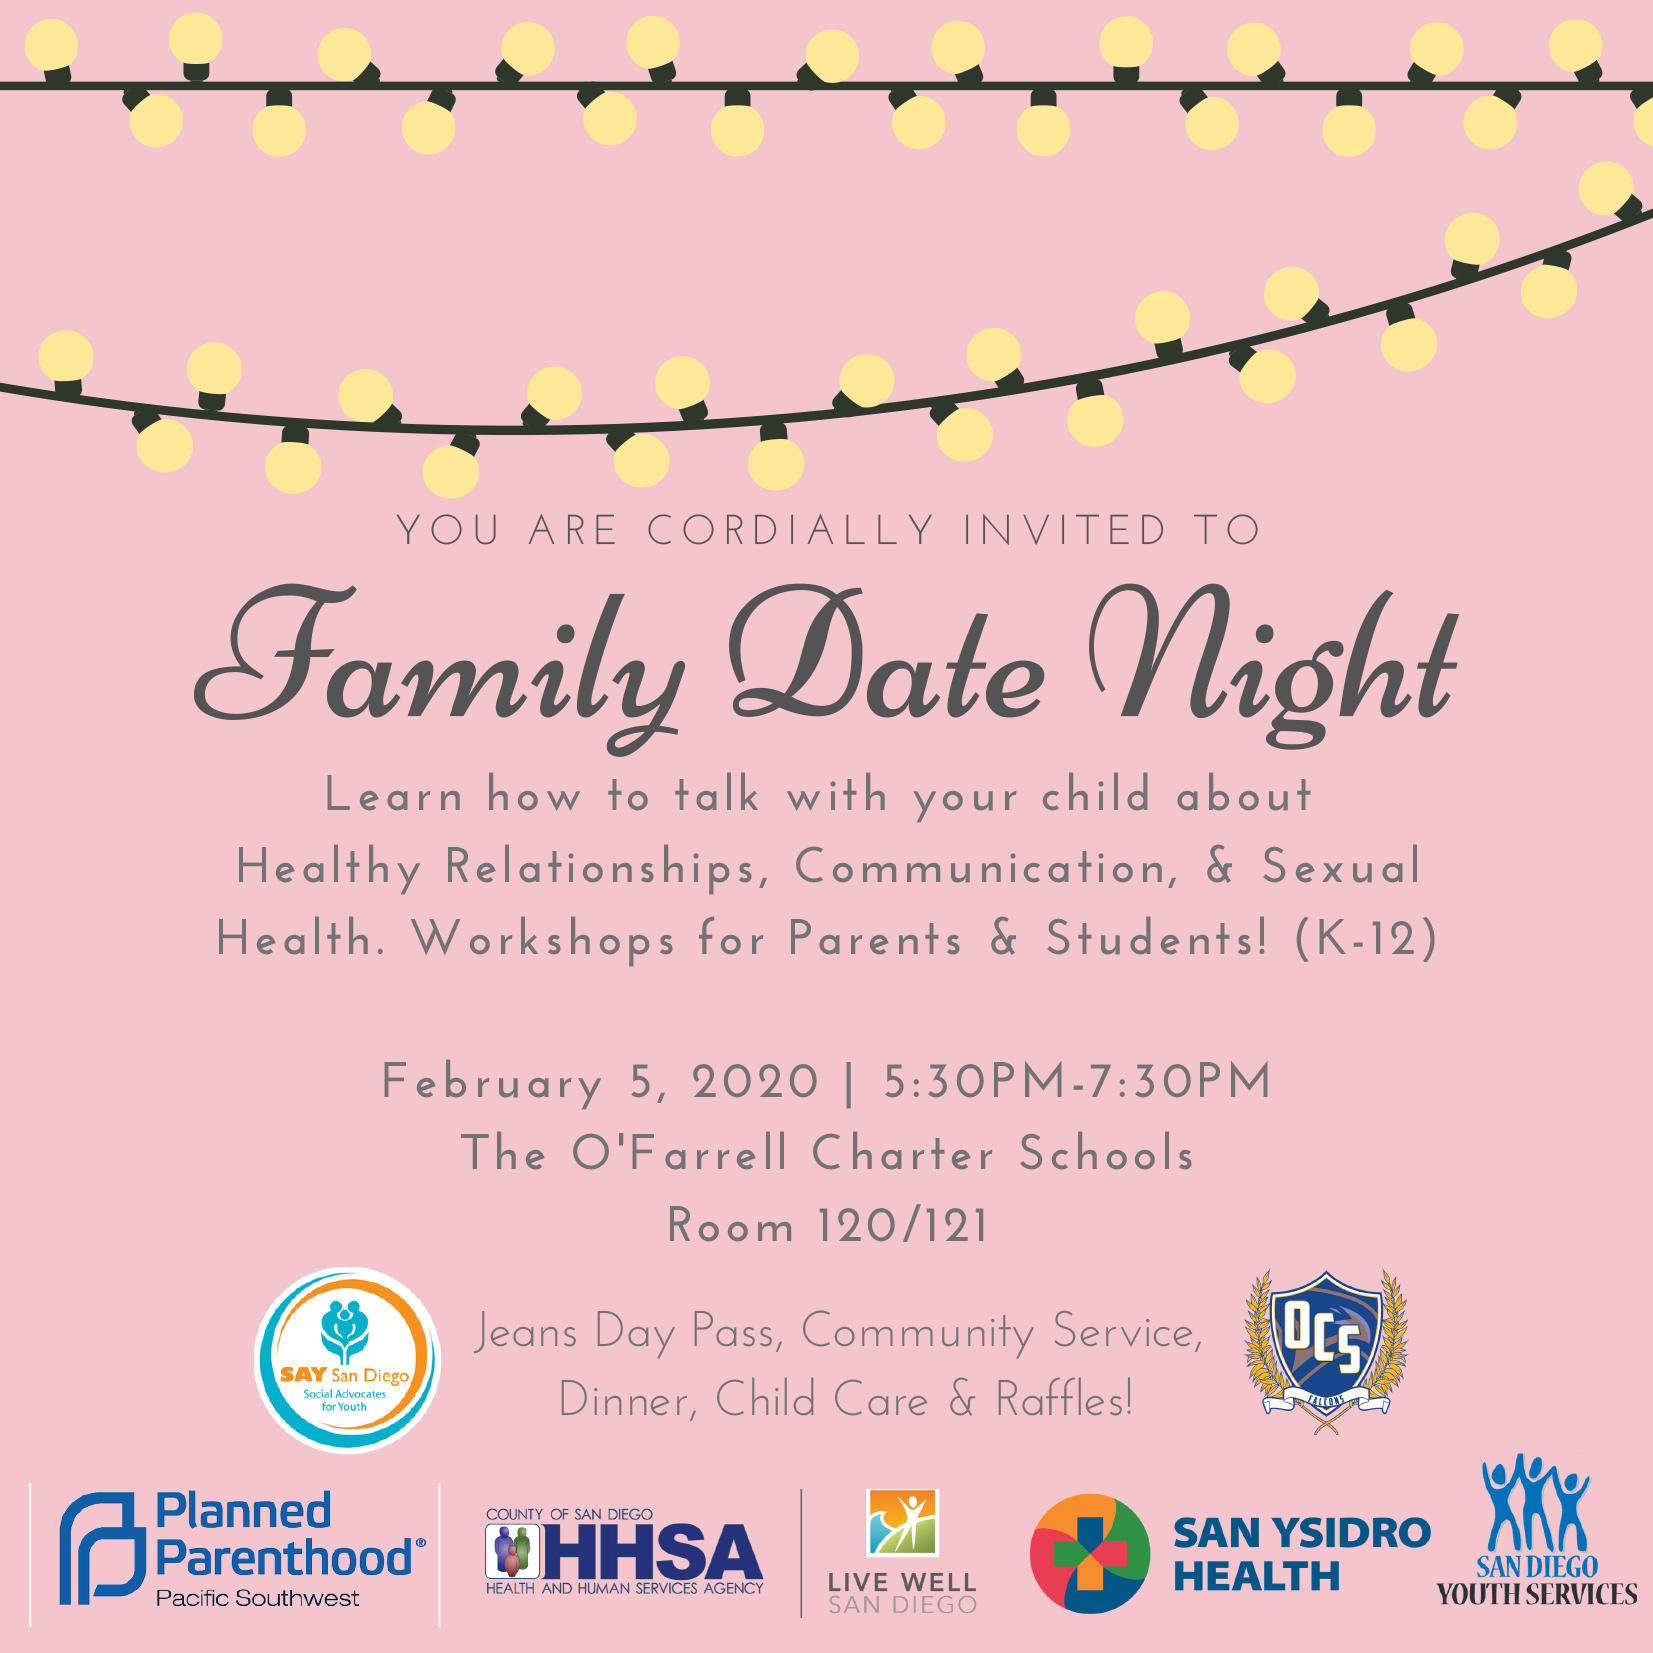 Family Date Night @ The O'Farrell Charter Schools